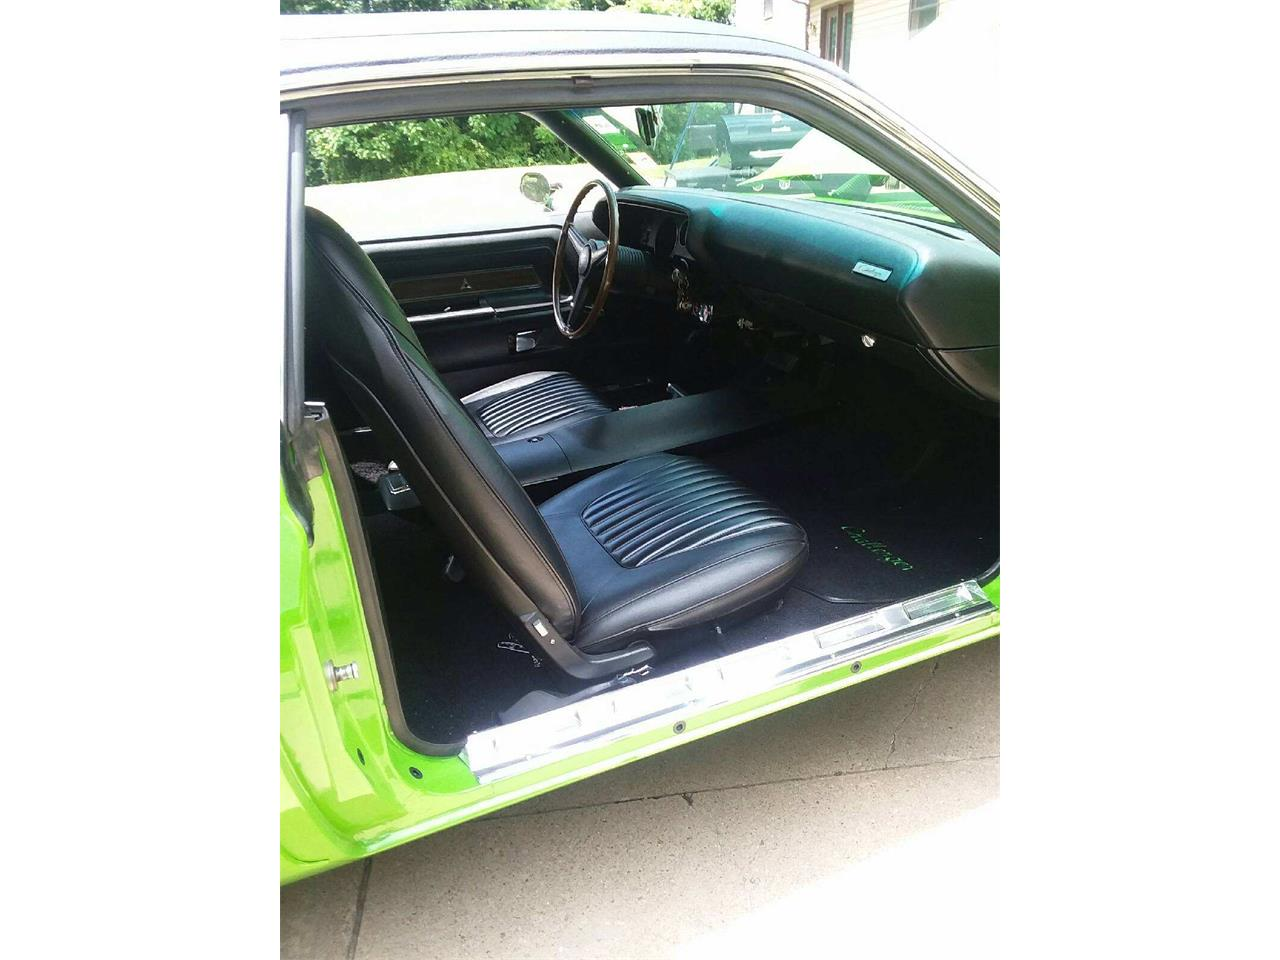 1971 Dodge Challenger R/T for sale in Waterford, PA – photo 20